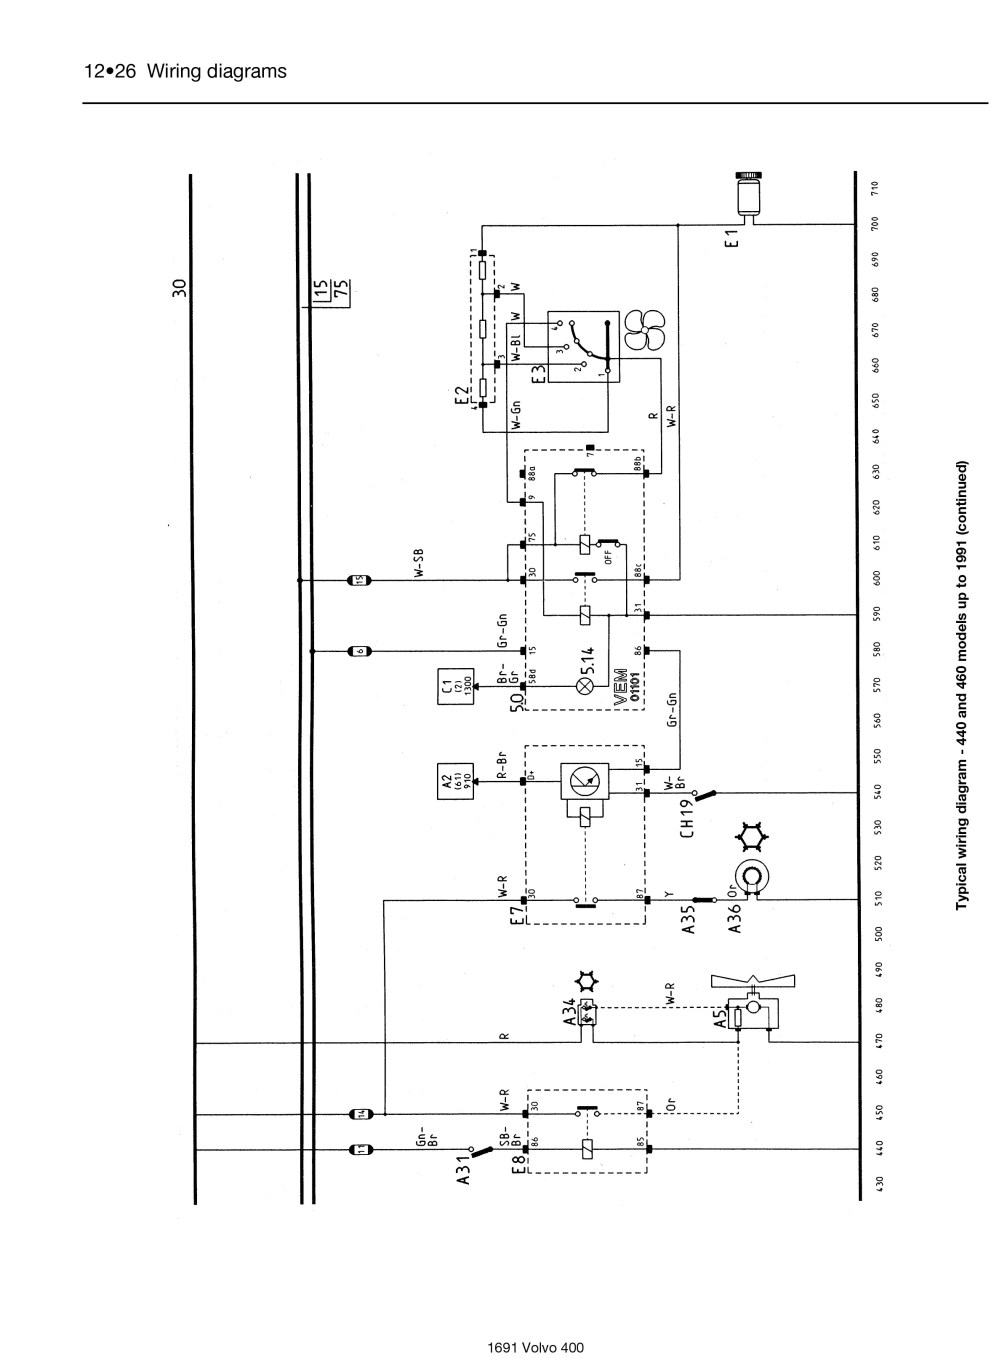 medium resolution of volvo 440 wiring diagram data schematic diagram volvo 440 wiring diagram volvo 440 wiring diagram